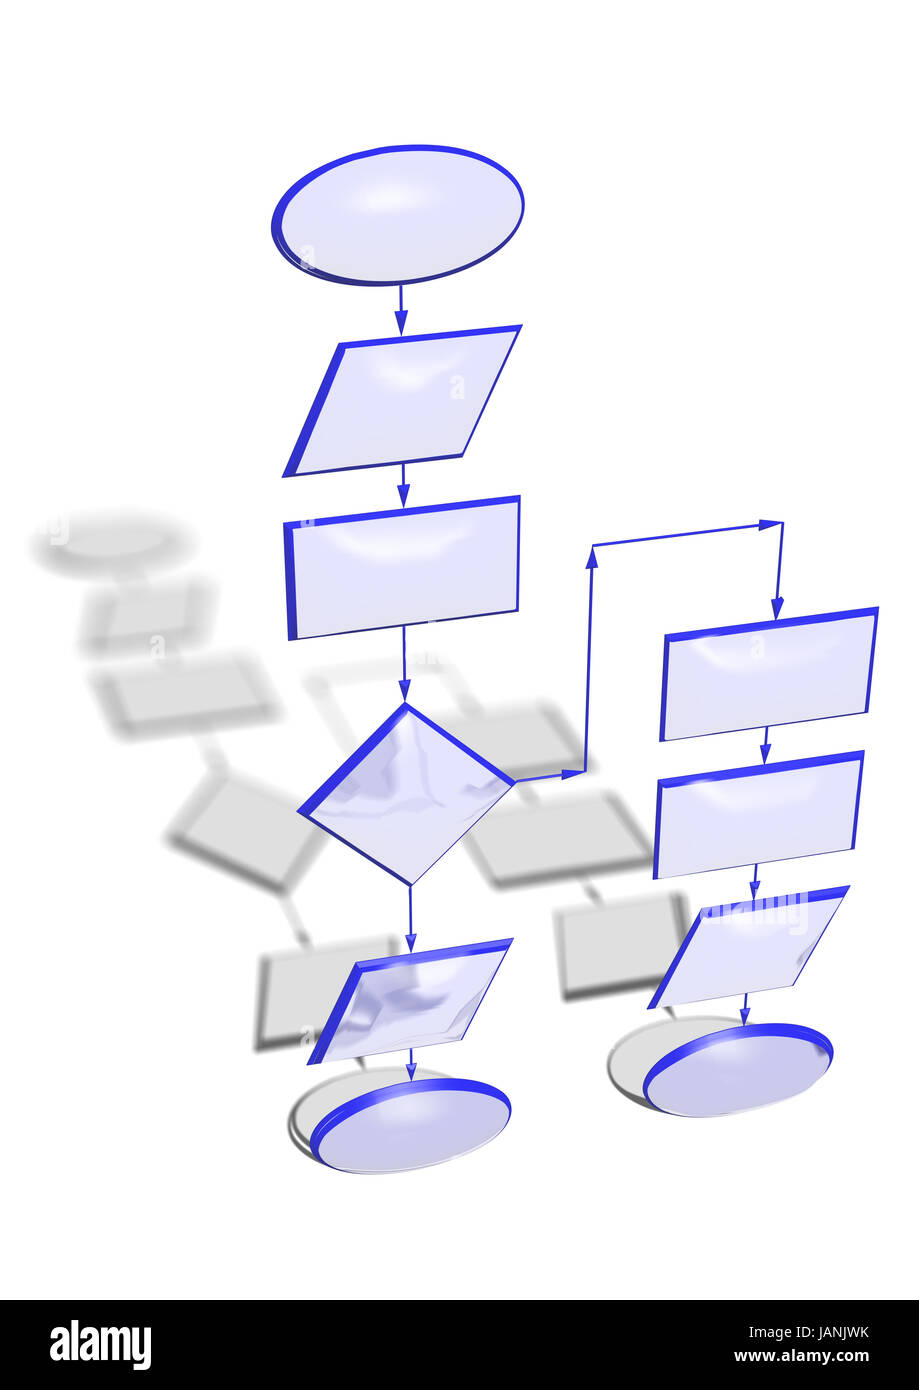 hight resolution of empty flow chart diagram use for programming